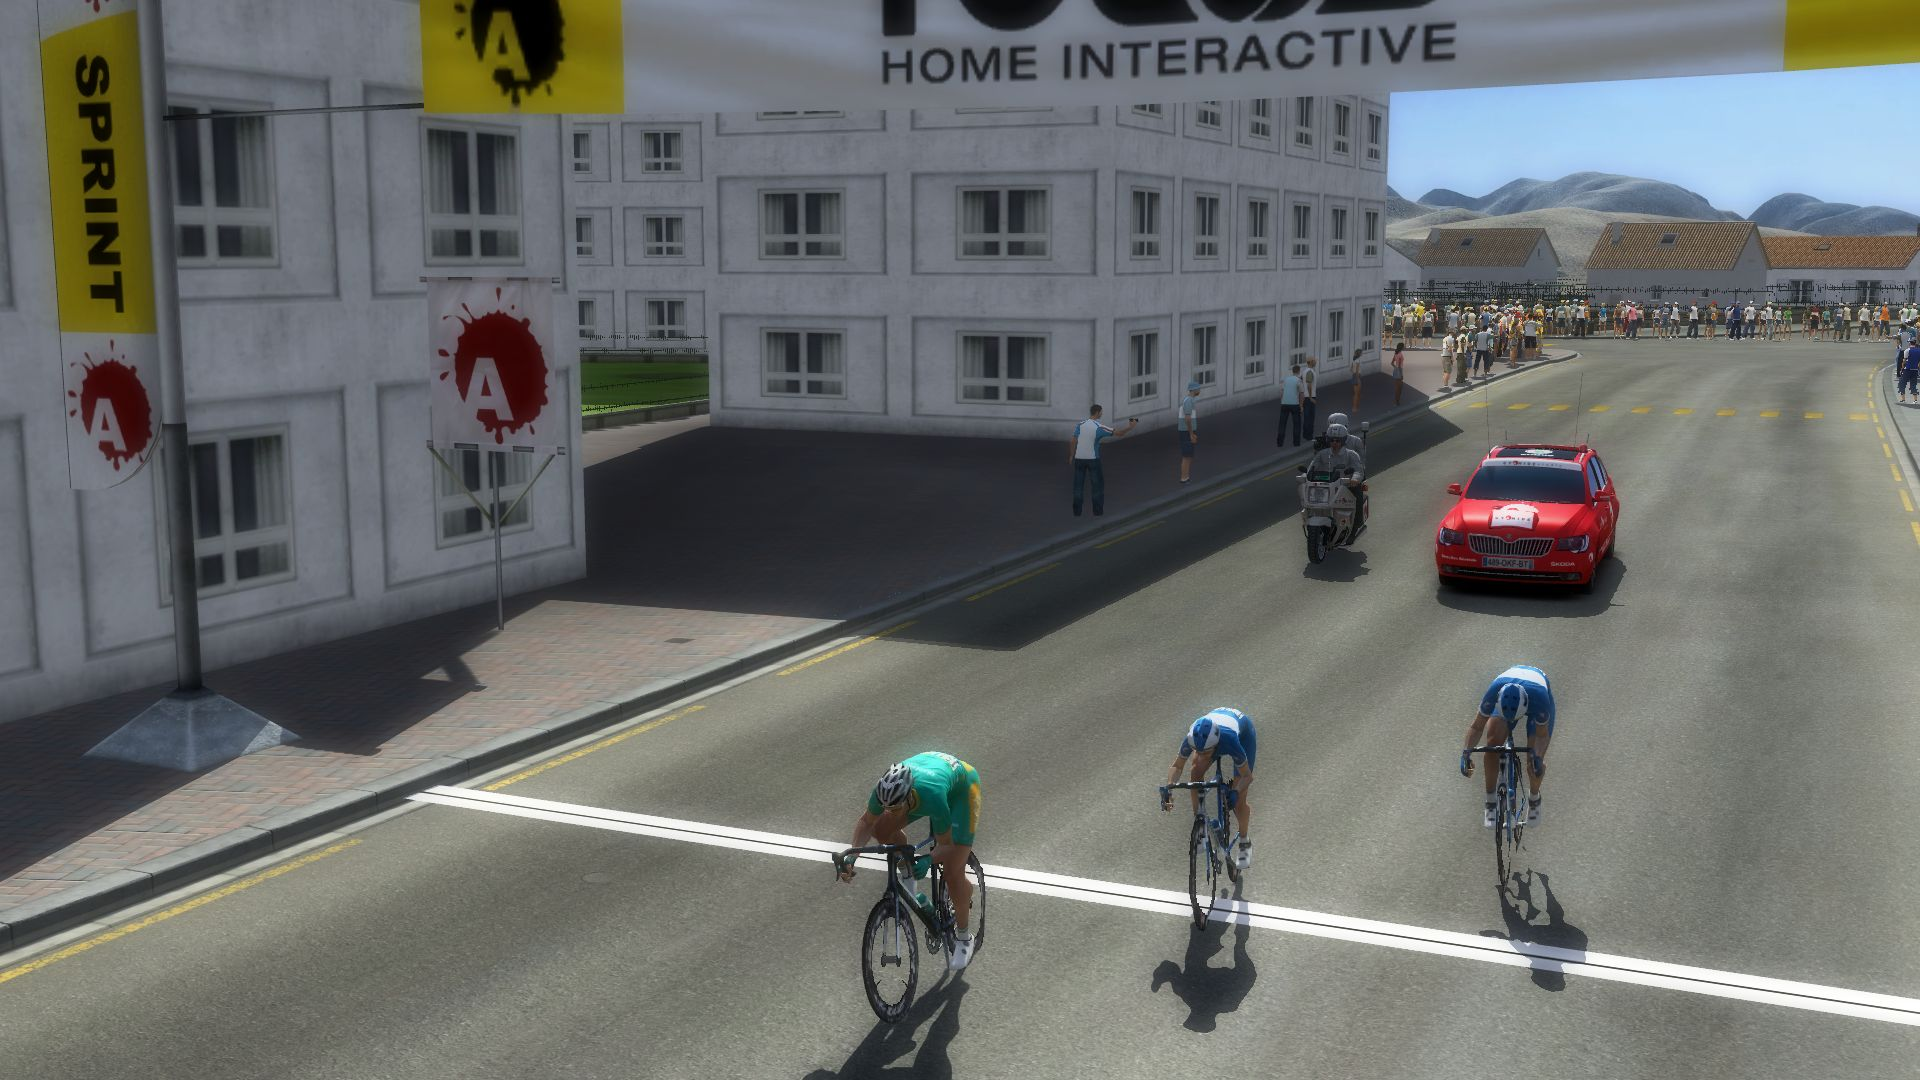 pcmdaily.com/images/mg/2019/Races/C2HC/Eritrea/TOES1%2010.jpg